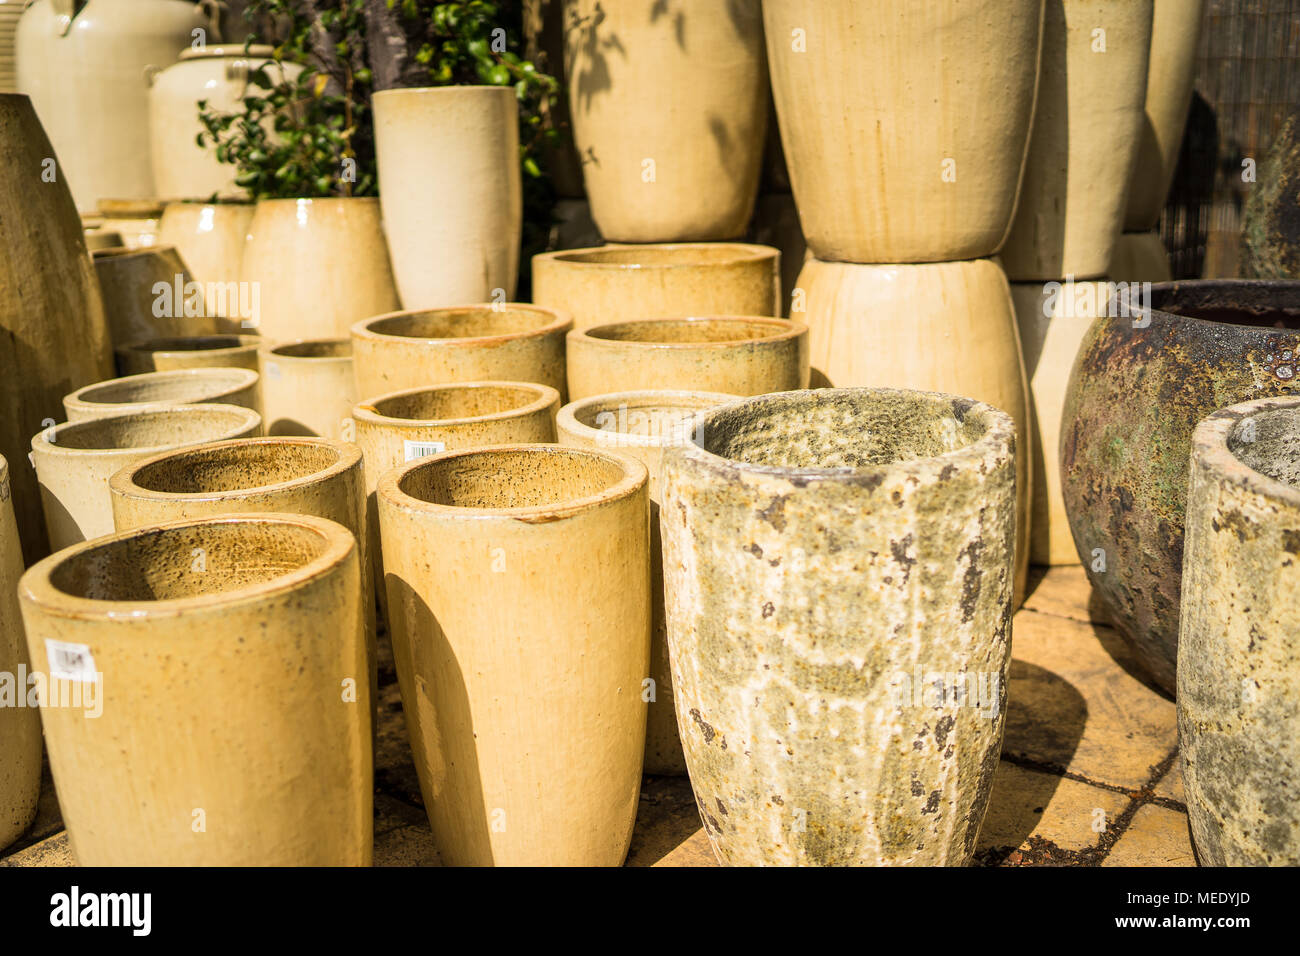 Large Ceramic Flower Pots Stacked At A Plant Nursery Stock Photo Alamy